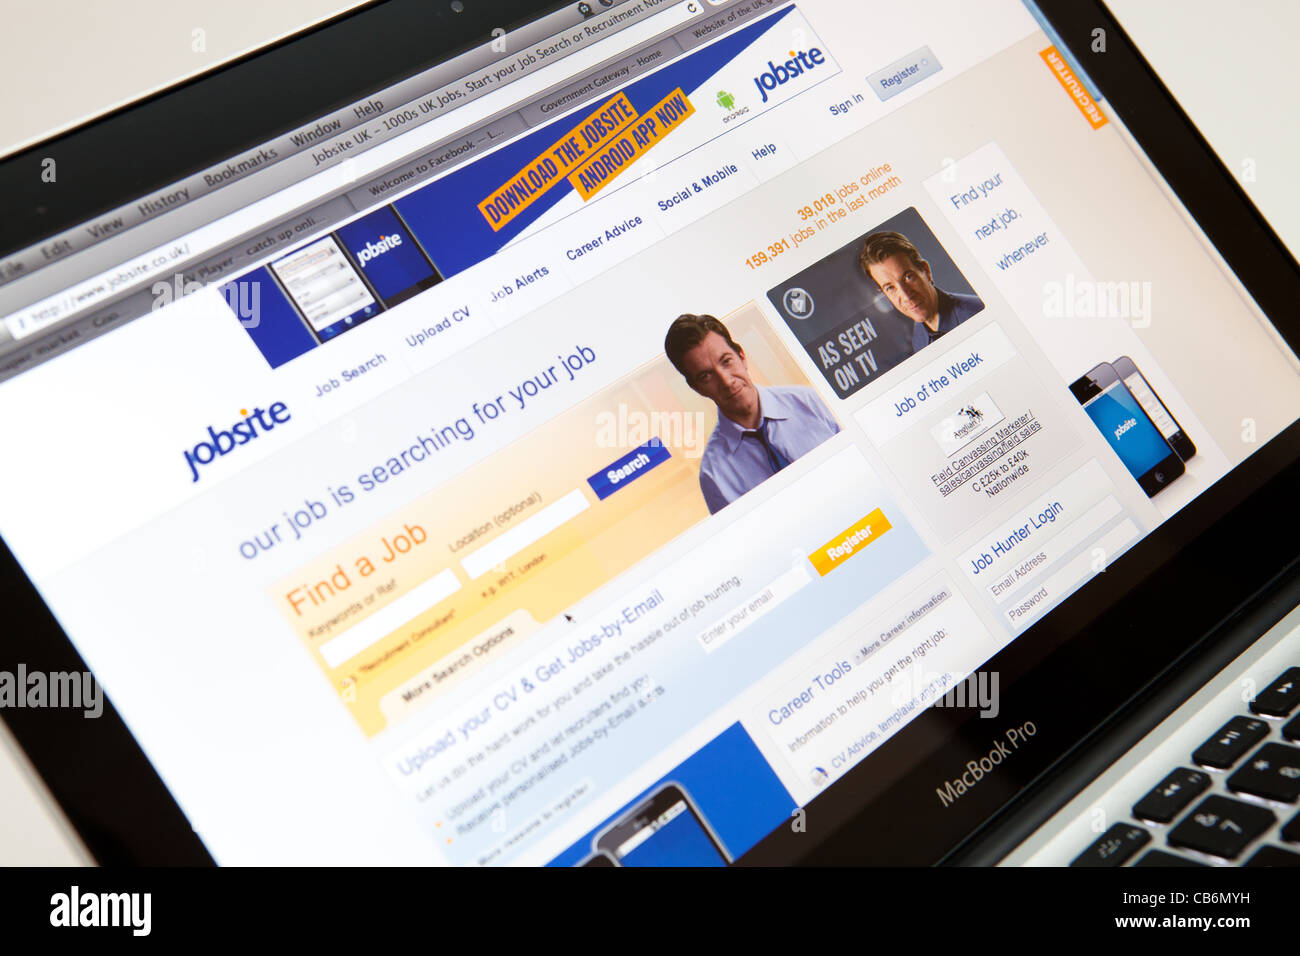 Website Screen shot of web page - Jobsite - Stock Image